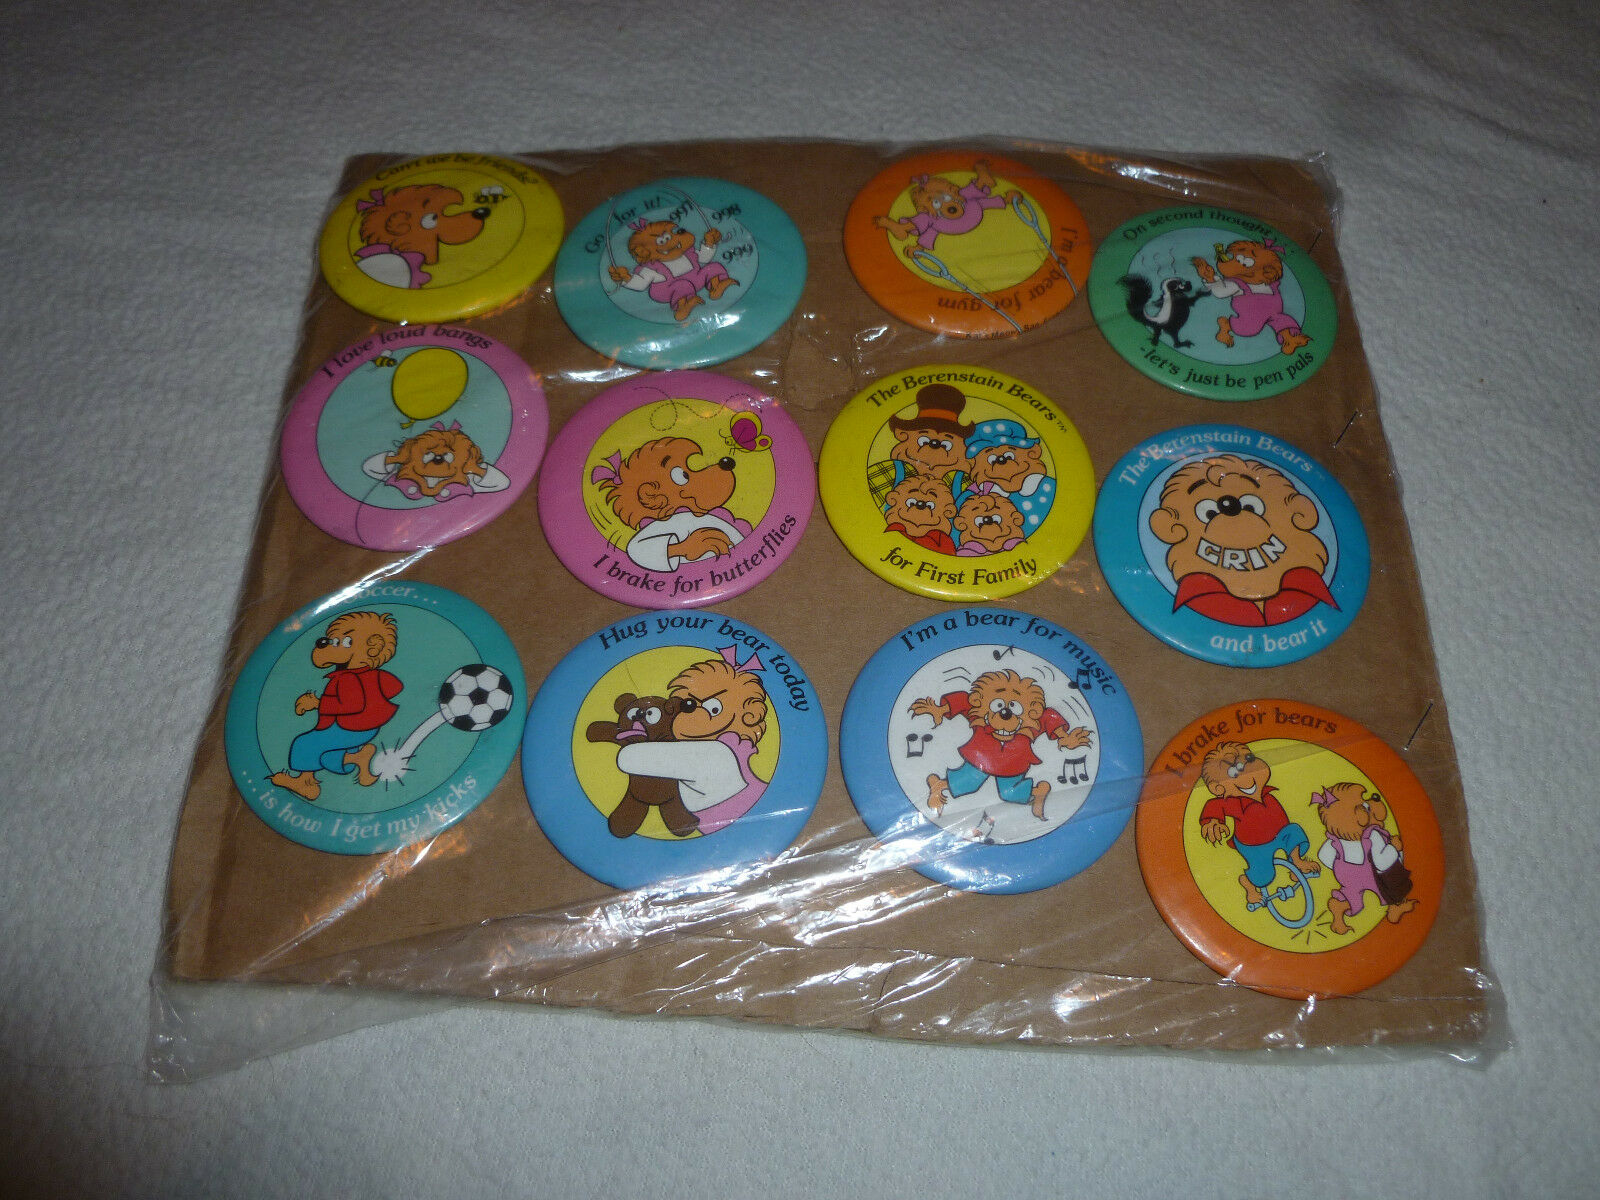 VINTAGE BERENSTAIN BEARS BUTTON PIN LOT BRAKE FOR BUTTERFLIES FIRST FAMILY GYM >